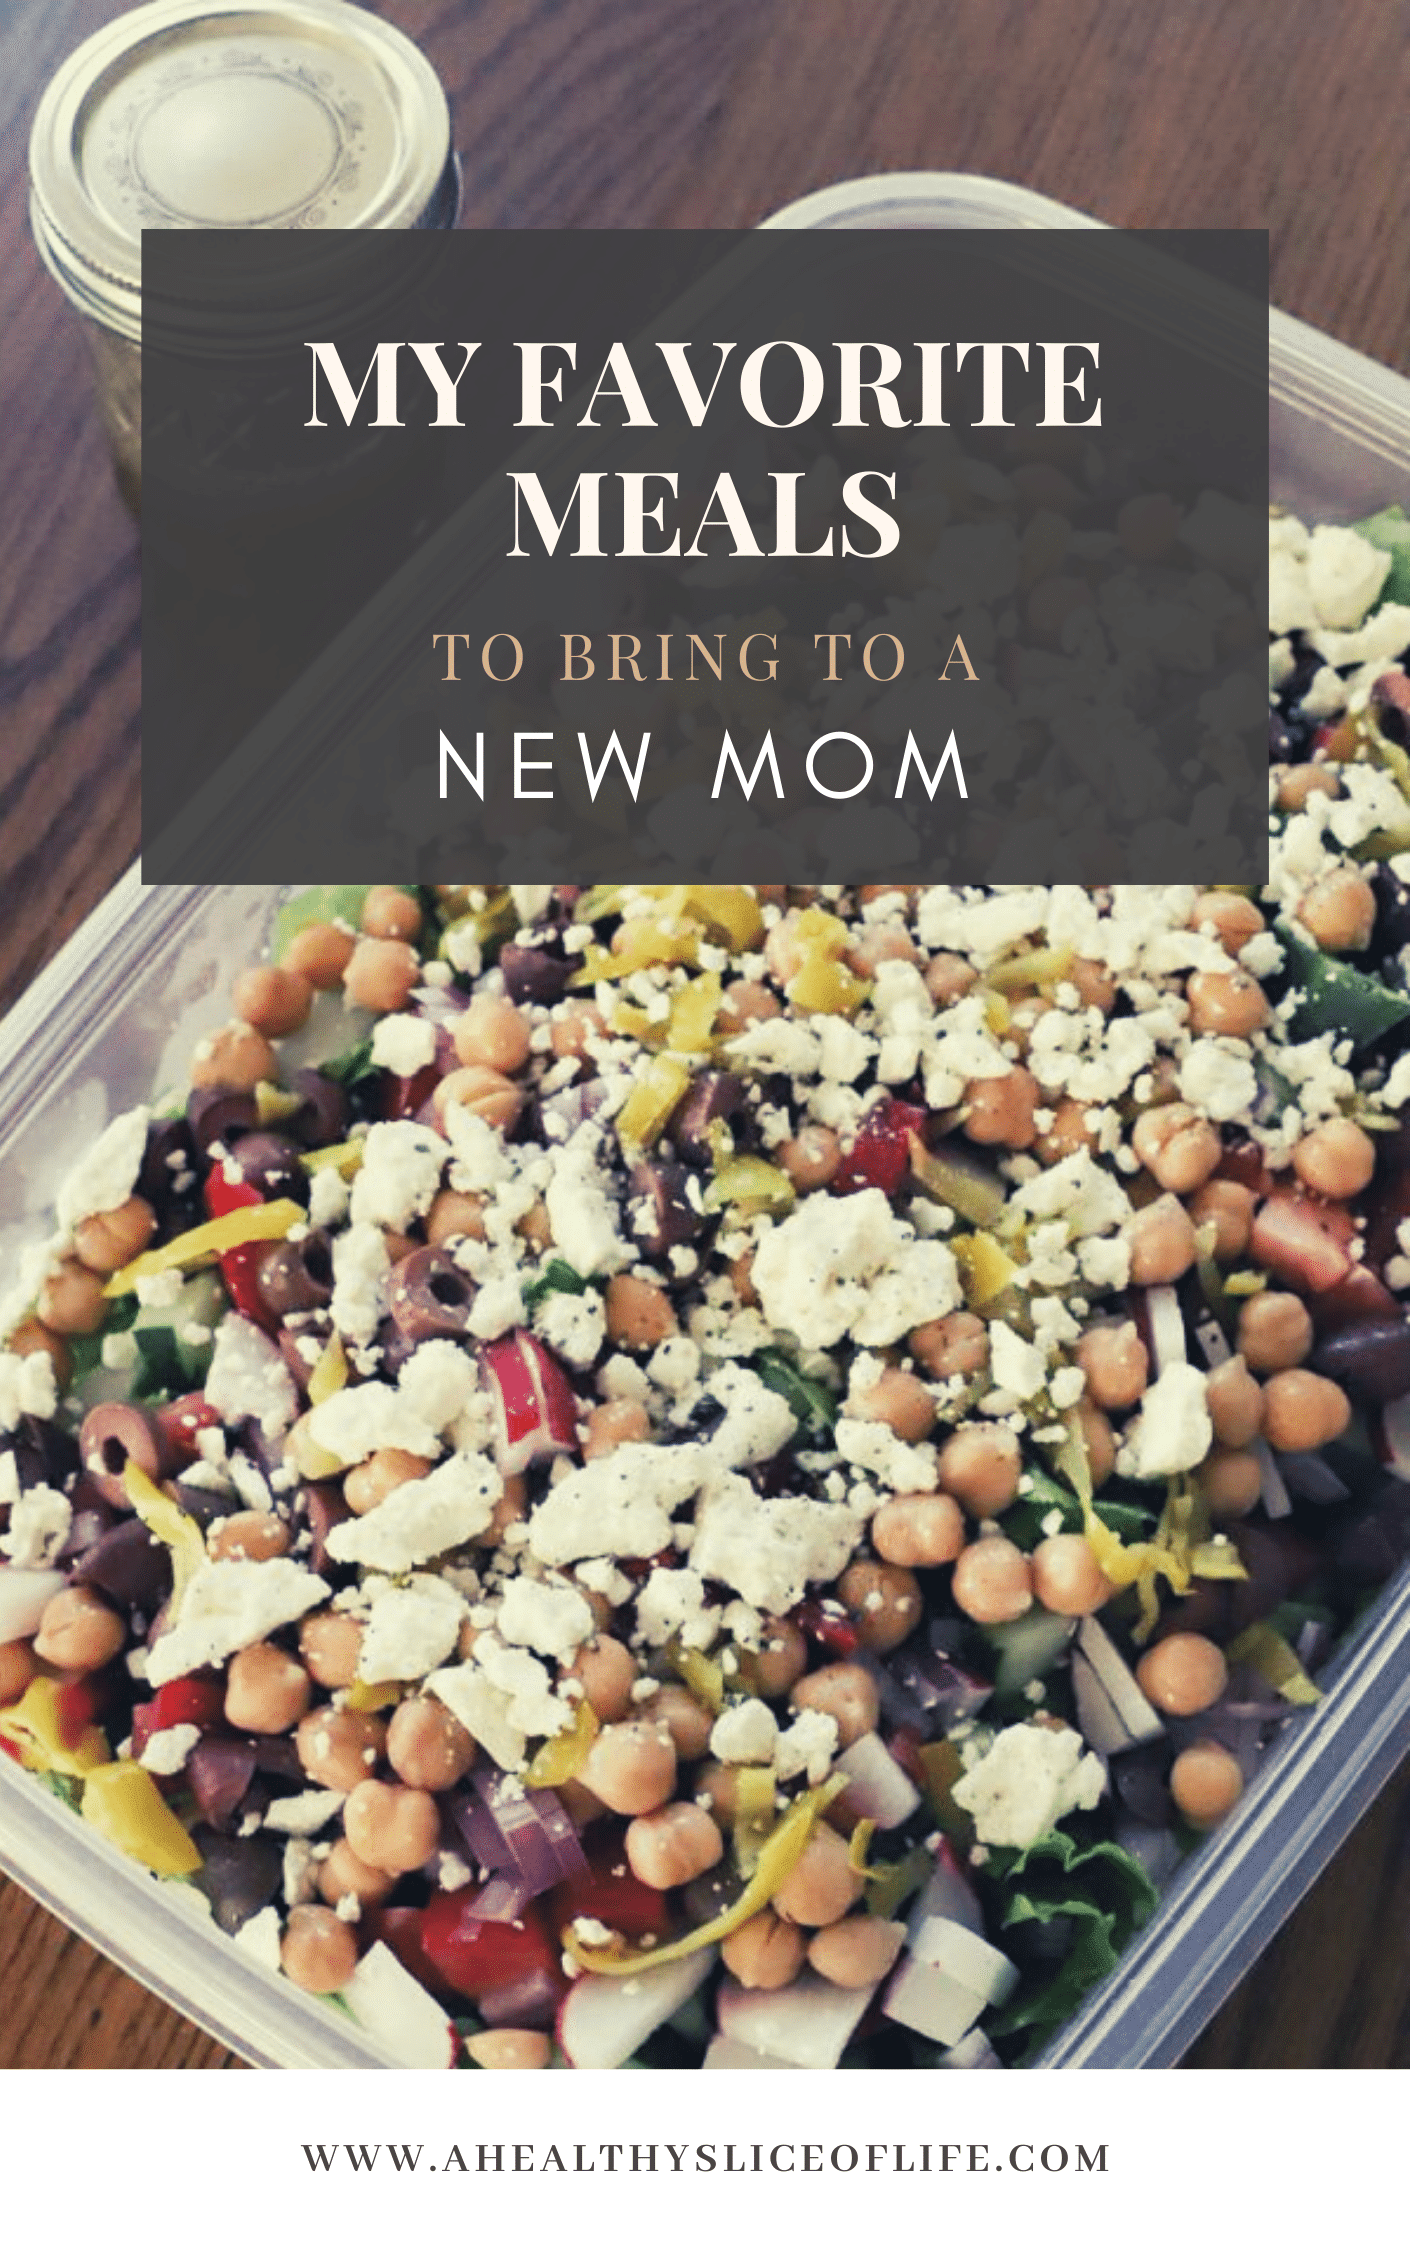 meals to bring a new mom